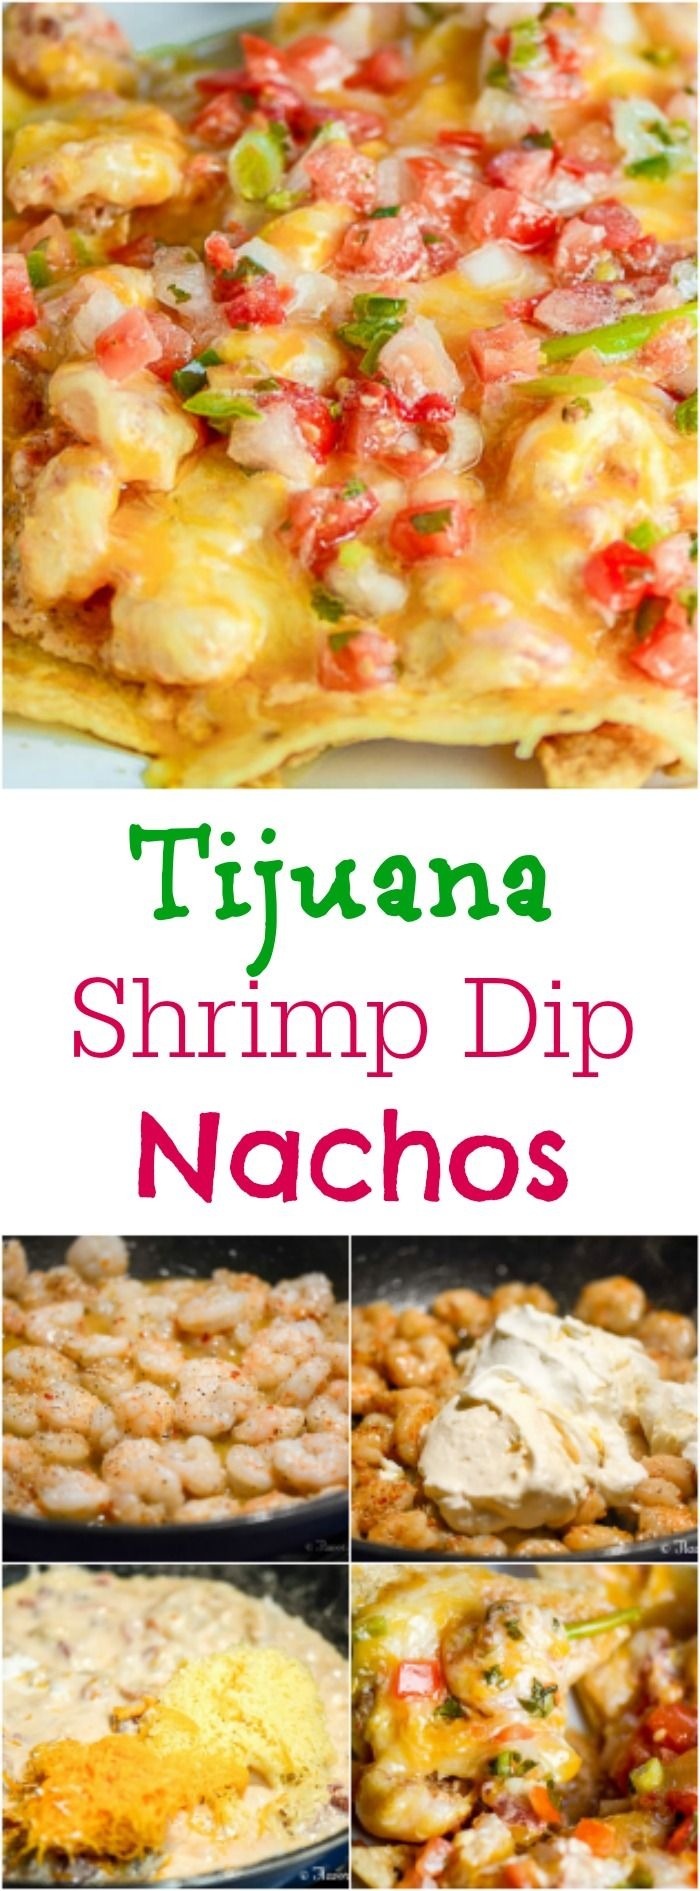 Tijuana Shrimp Dip Nachos are a cheesy, creamy, spicy, and crunchy appetizer. ~ http://FlavorMosaic.com  #JustAddRotel #ad